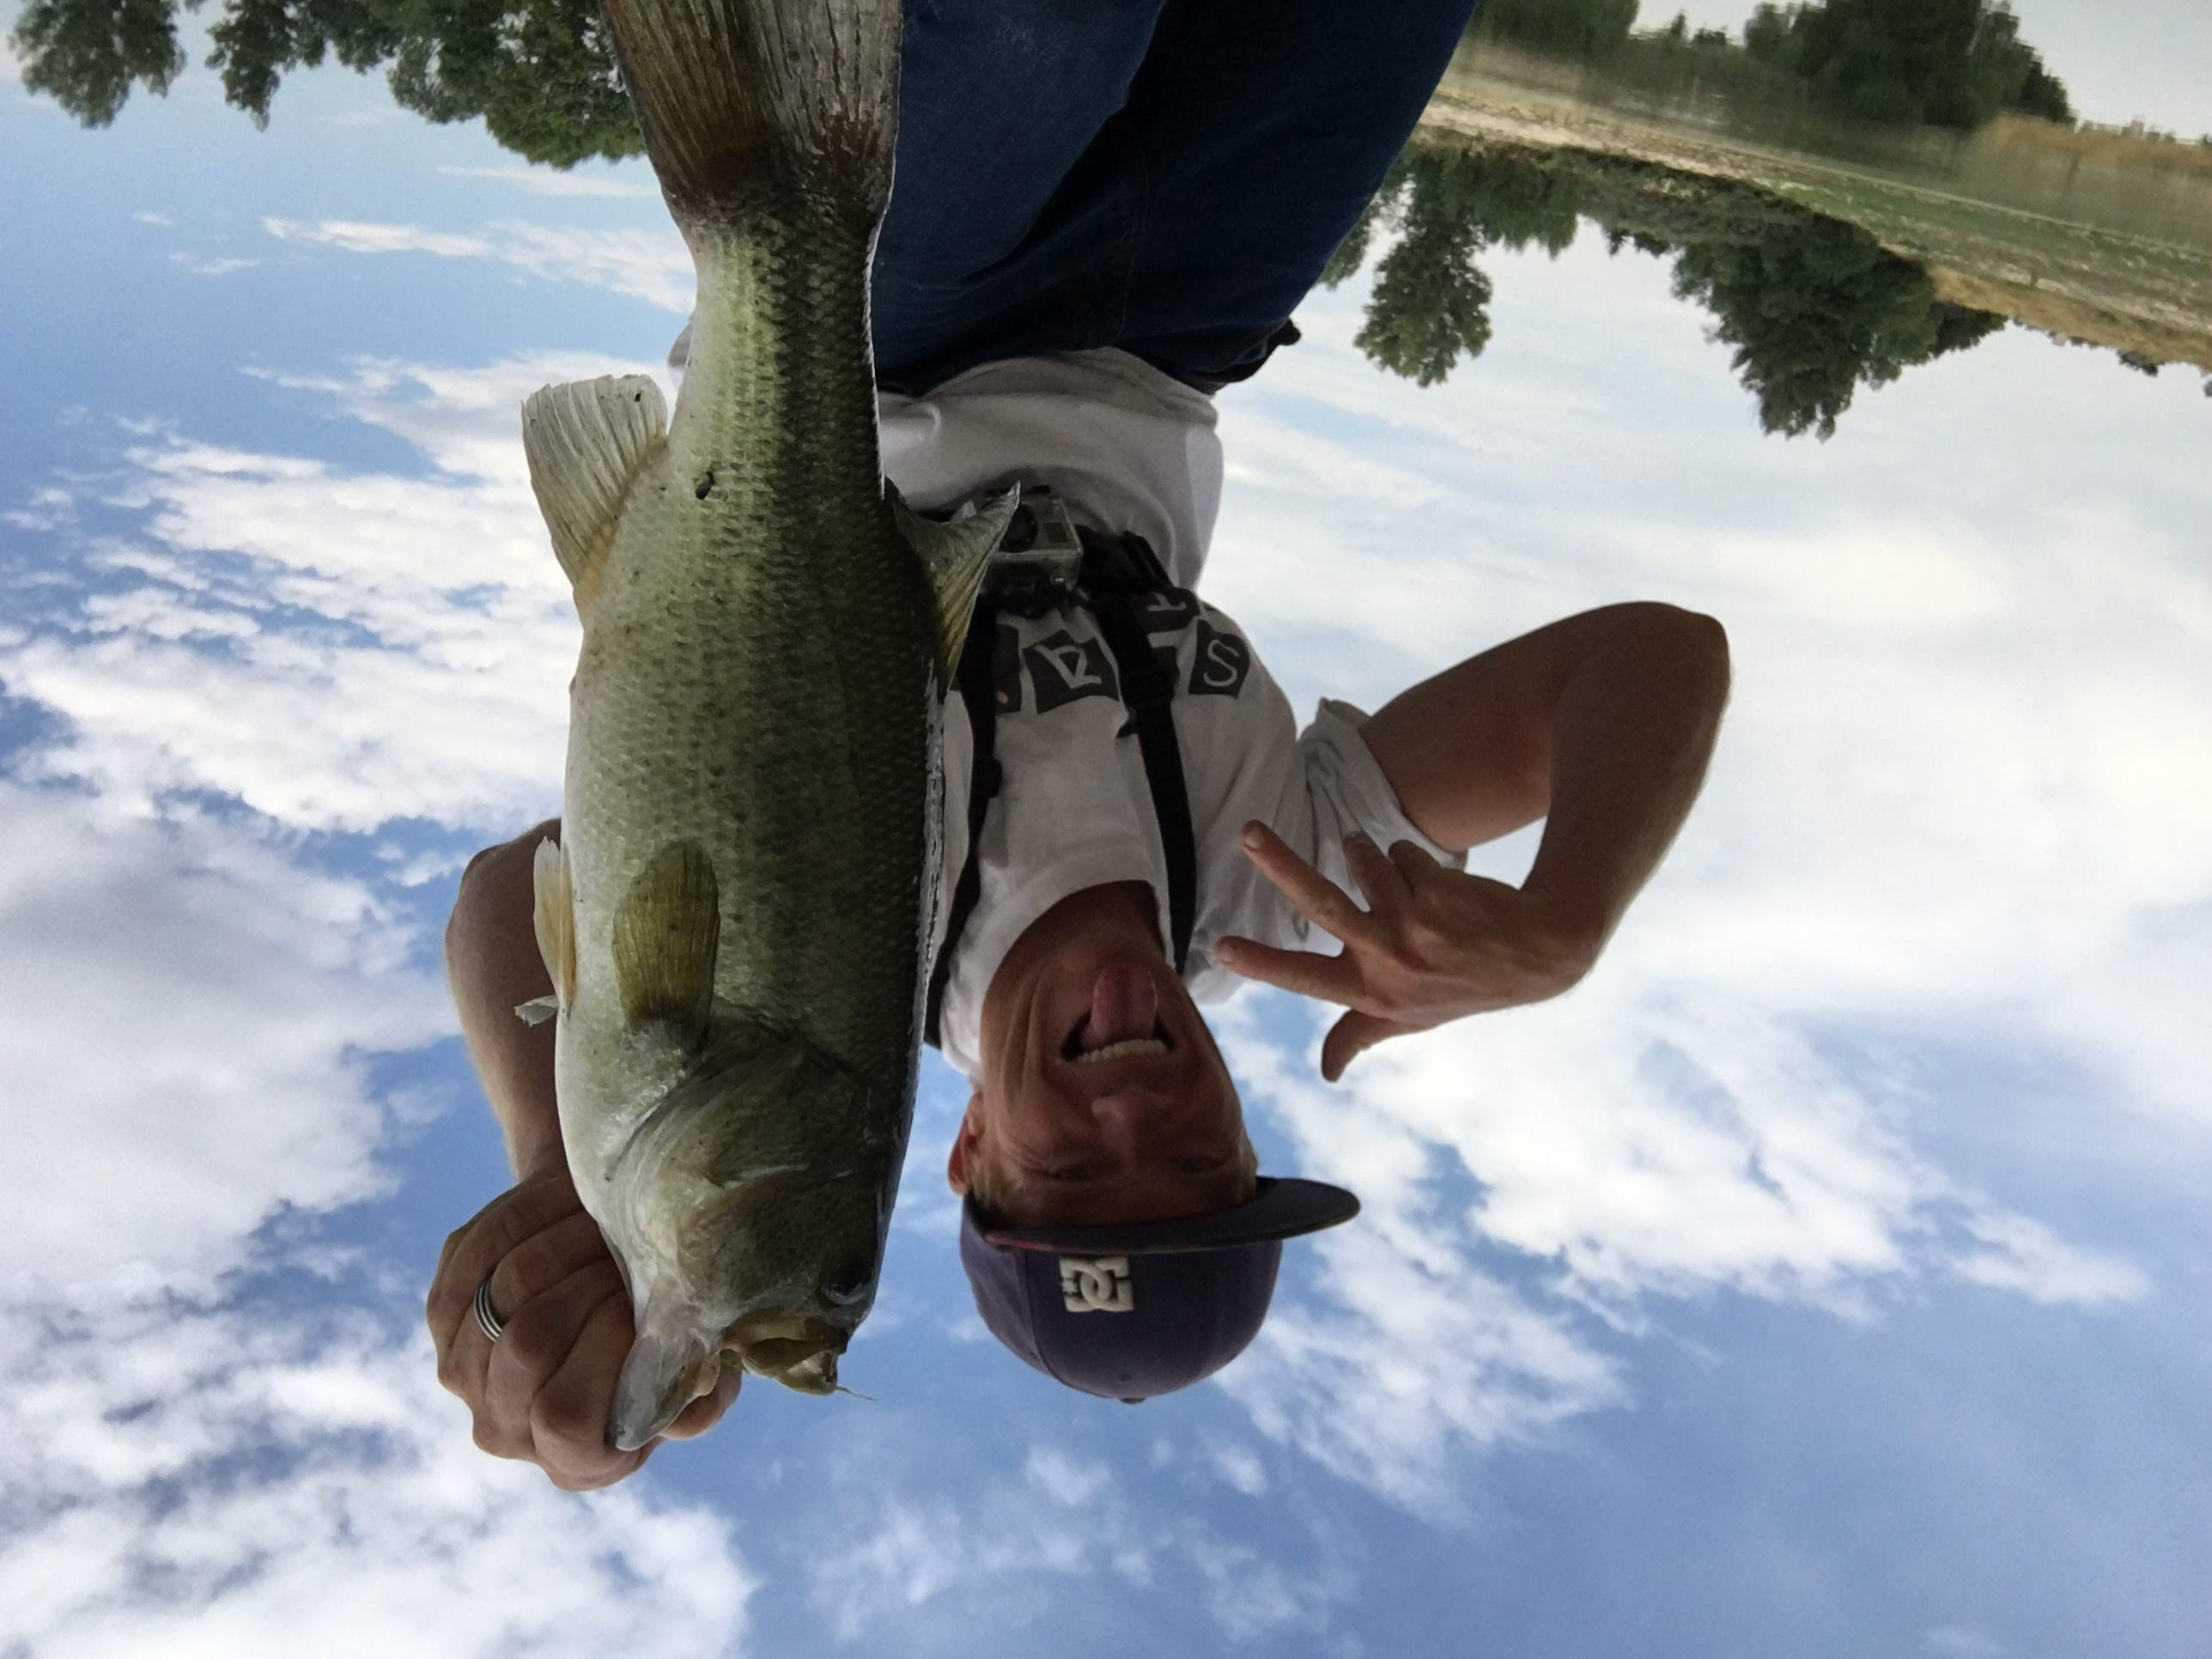 Bass fishing topwater lures where when what how to for Best bass fishing near me